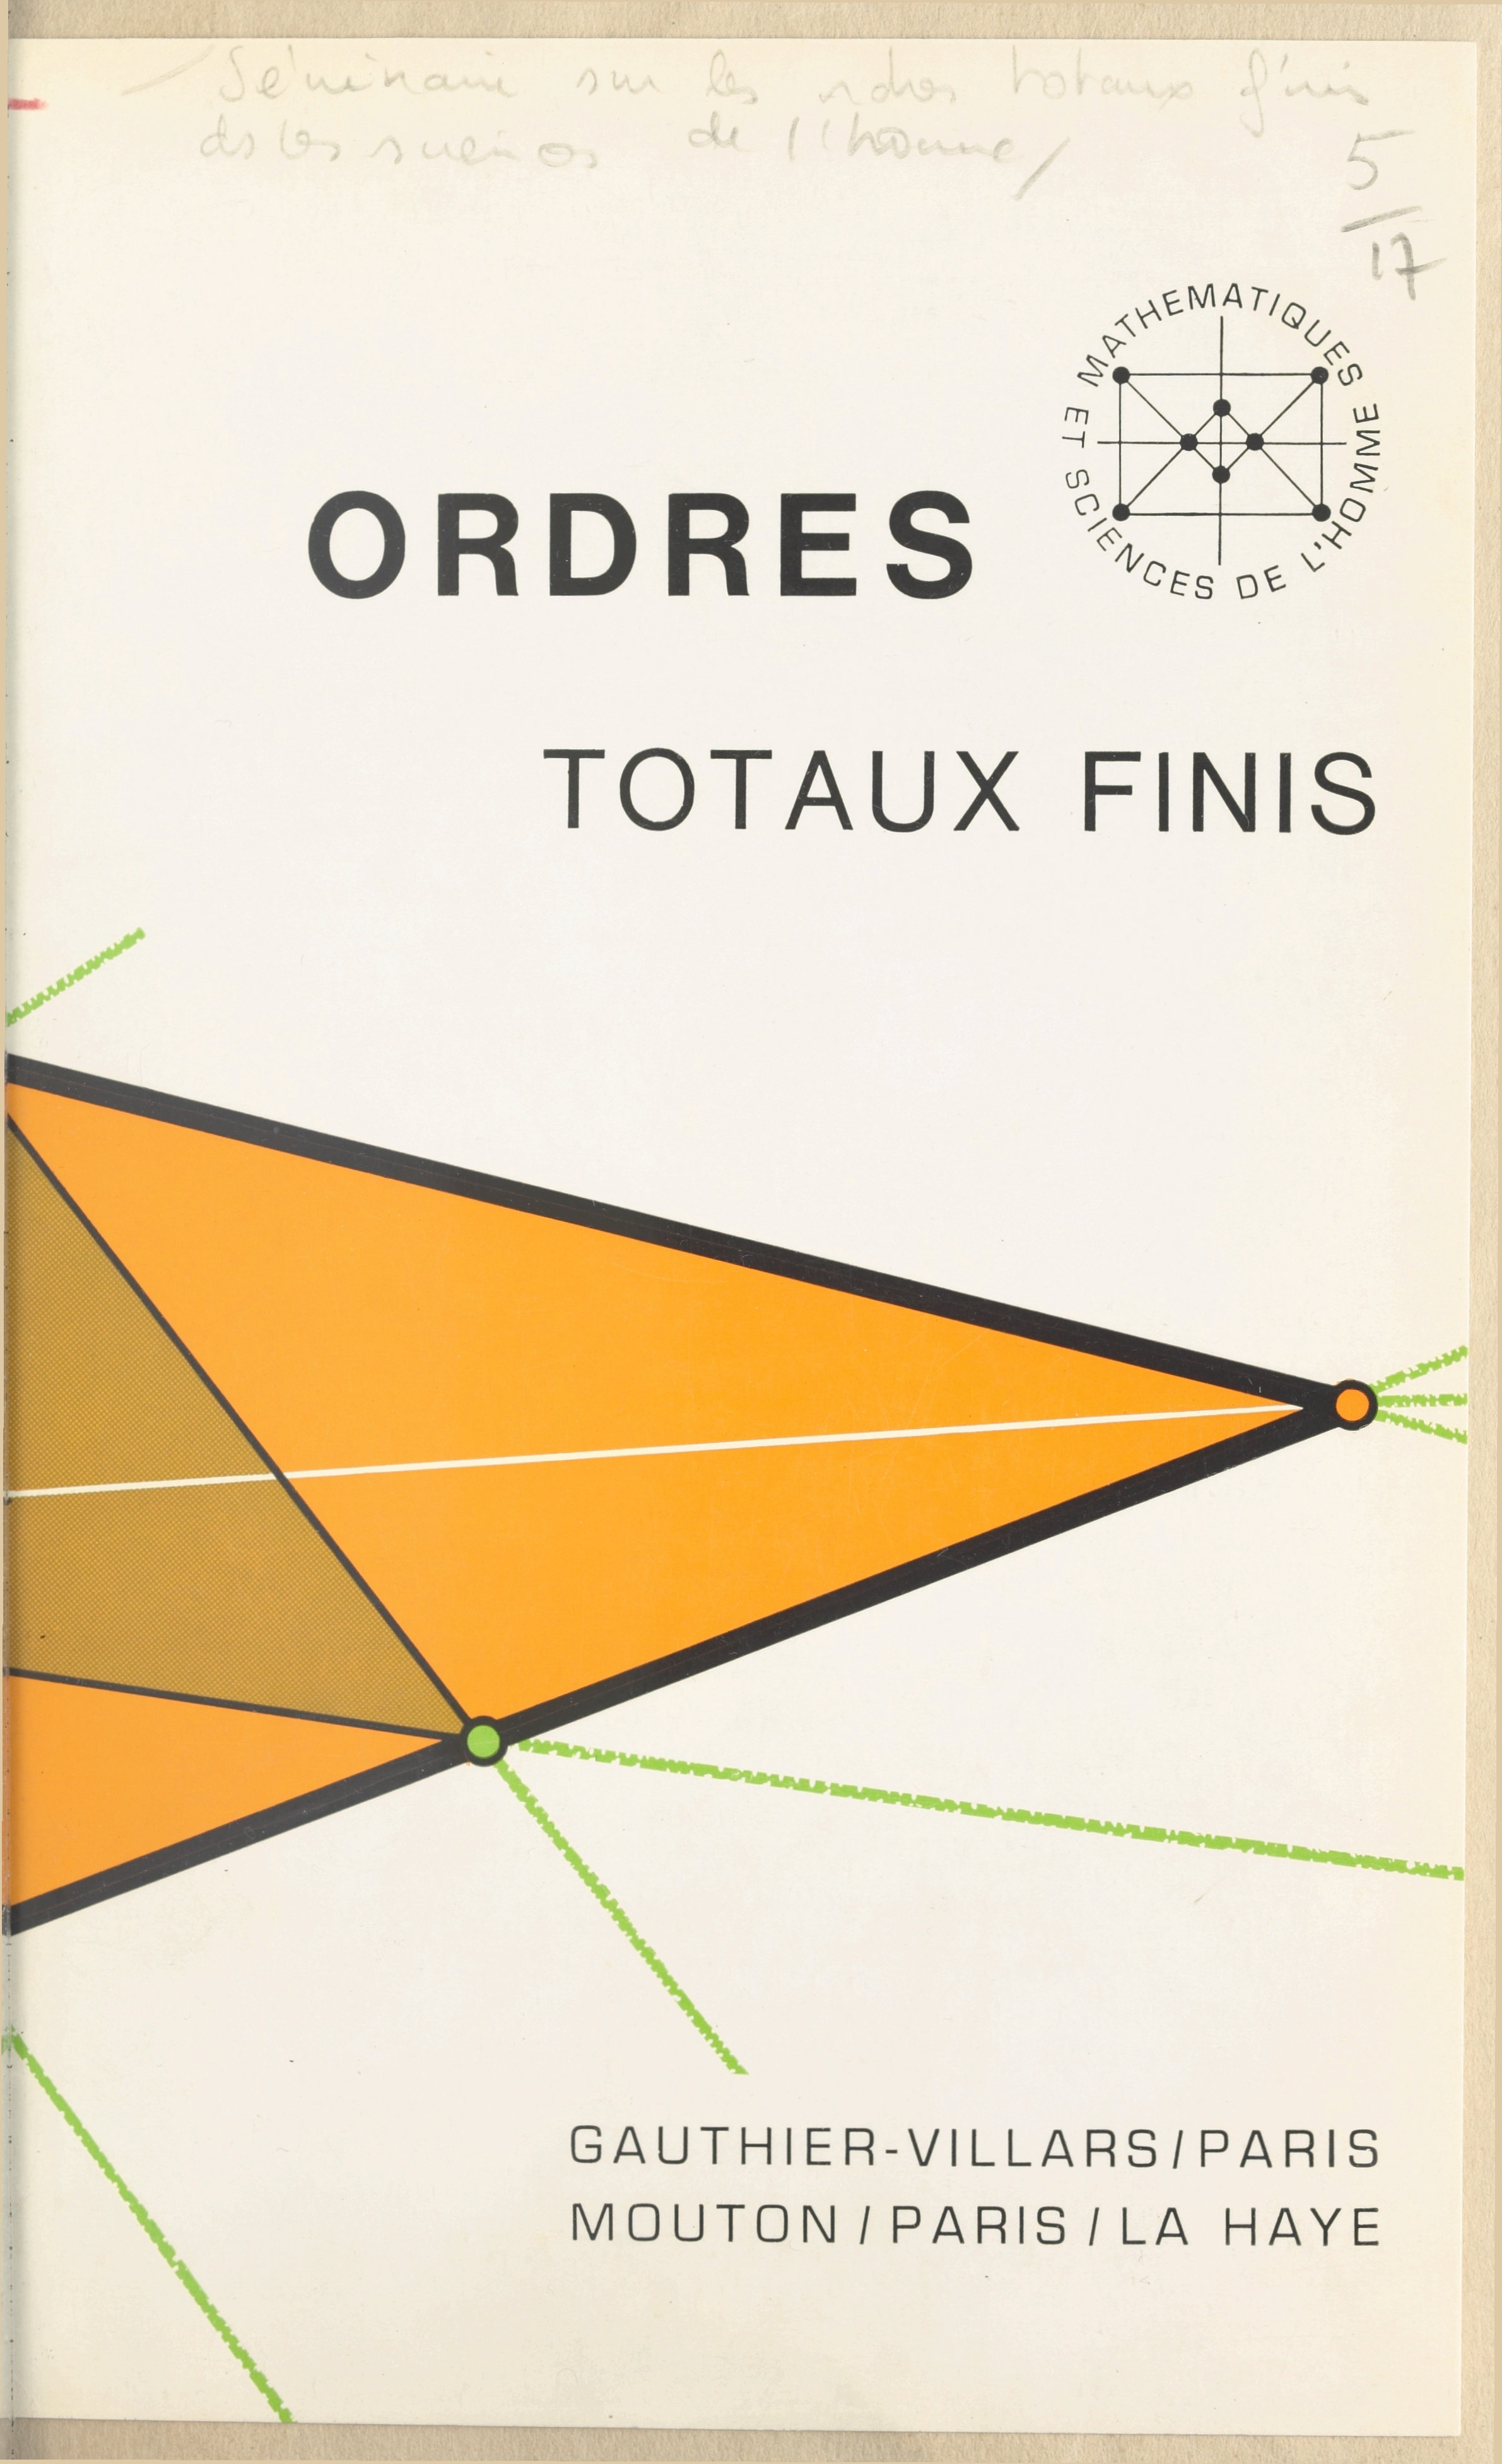 Ordres totaux finis